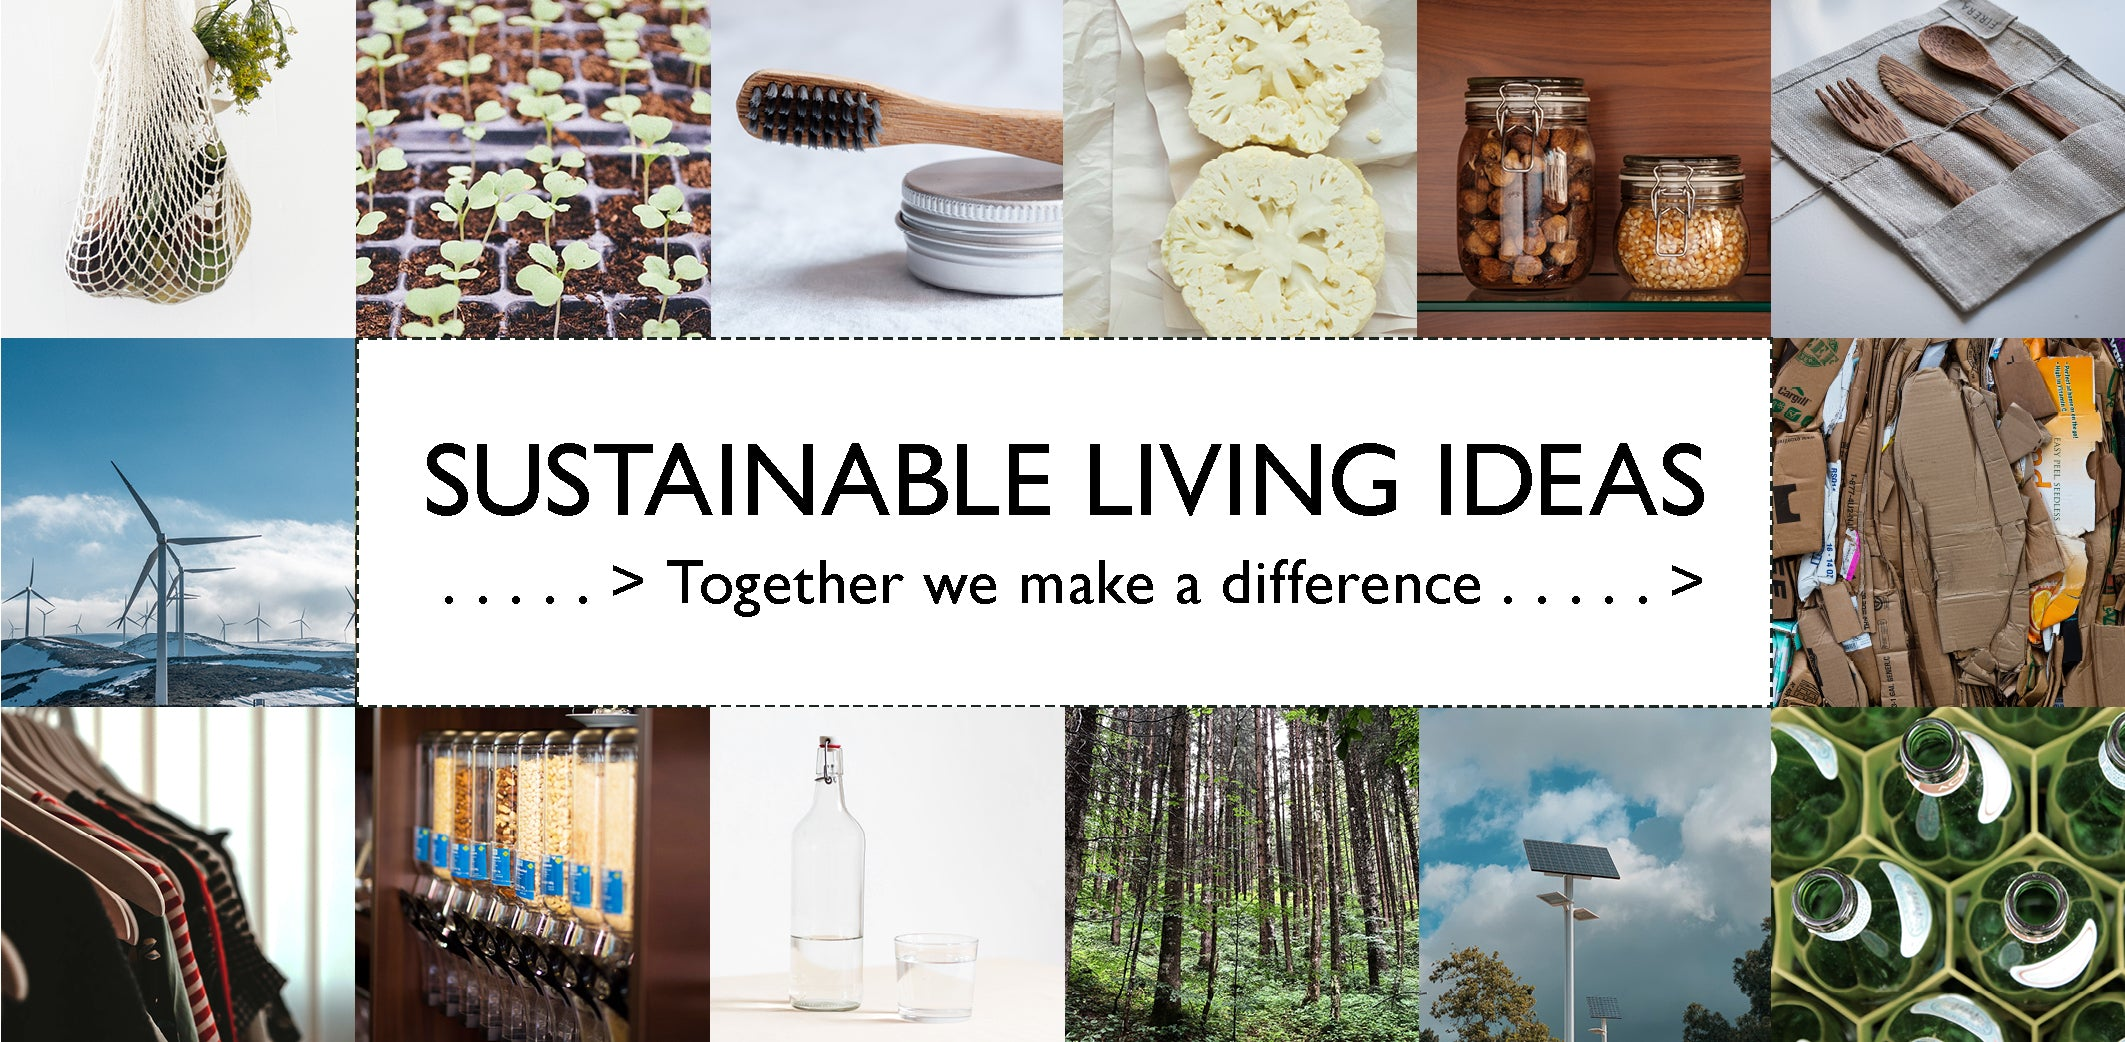 Healthy Sustainable Living - create ecological change